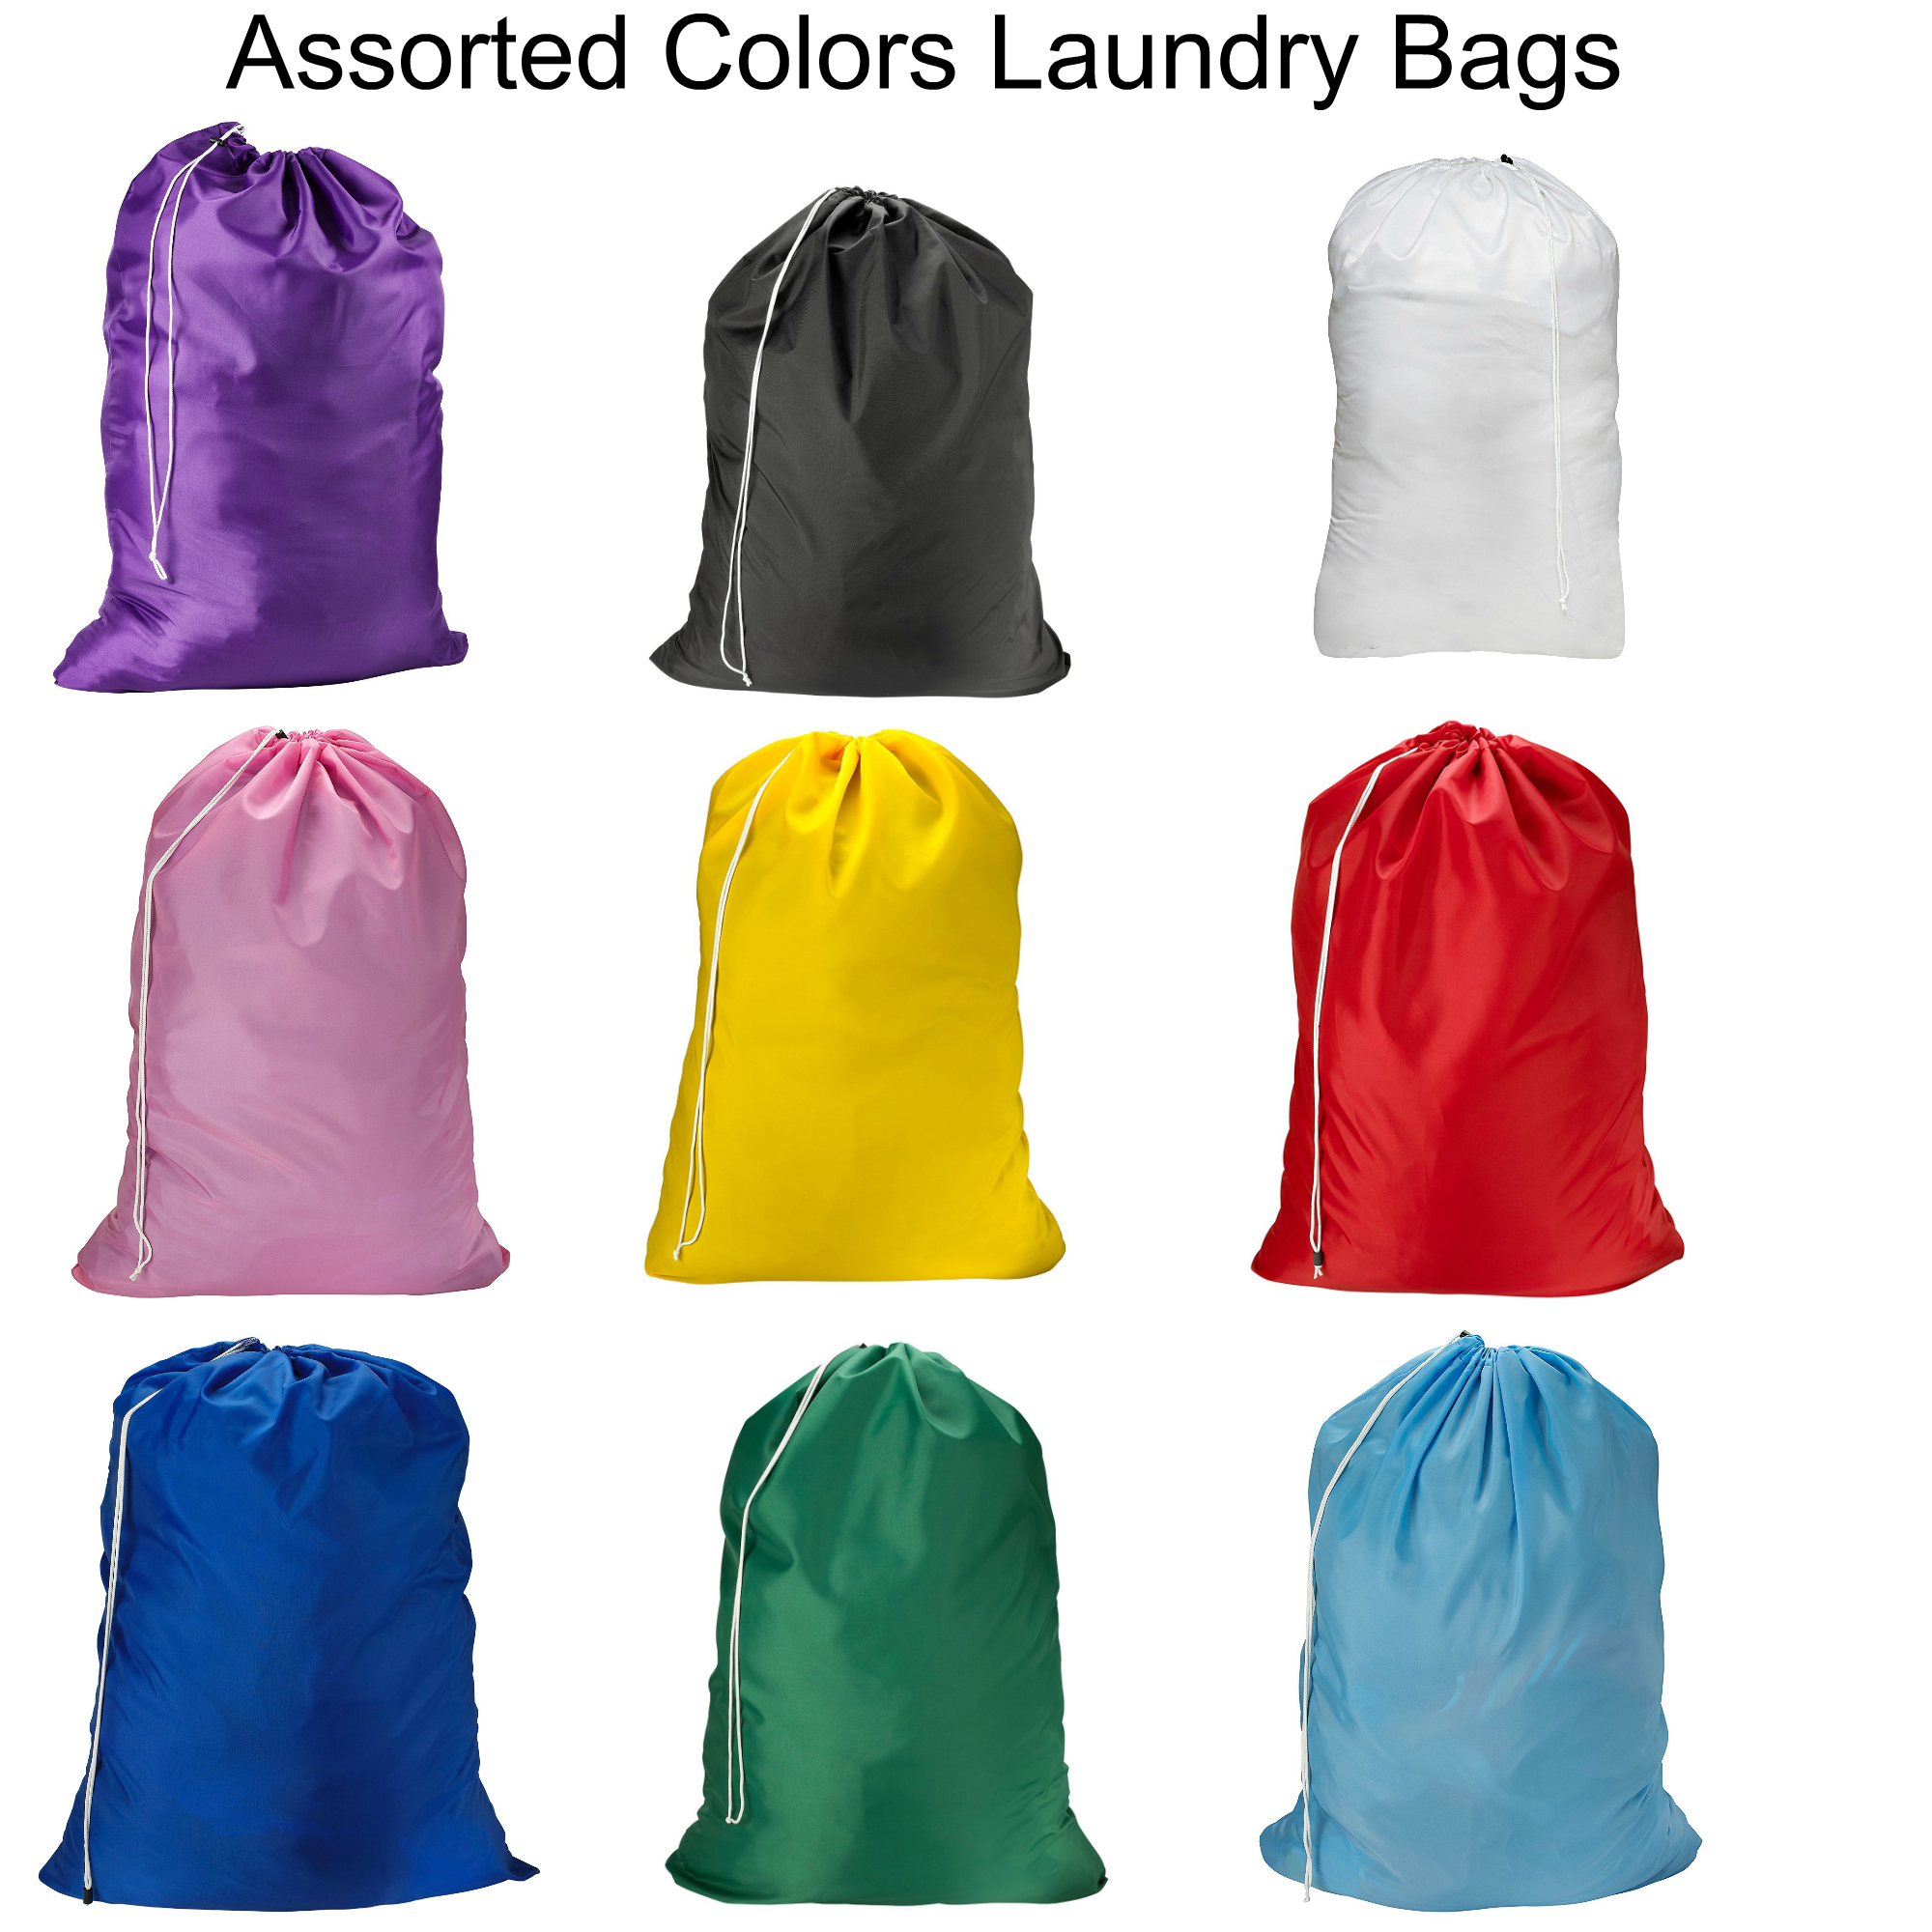 magg shop Large 30 X 40 Inch Heavy Duty Nylon Laundry Bag with Drawstring Slip Lock Closure in Assorted Colors and Designs and packs